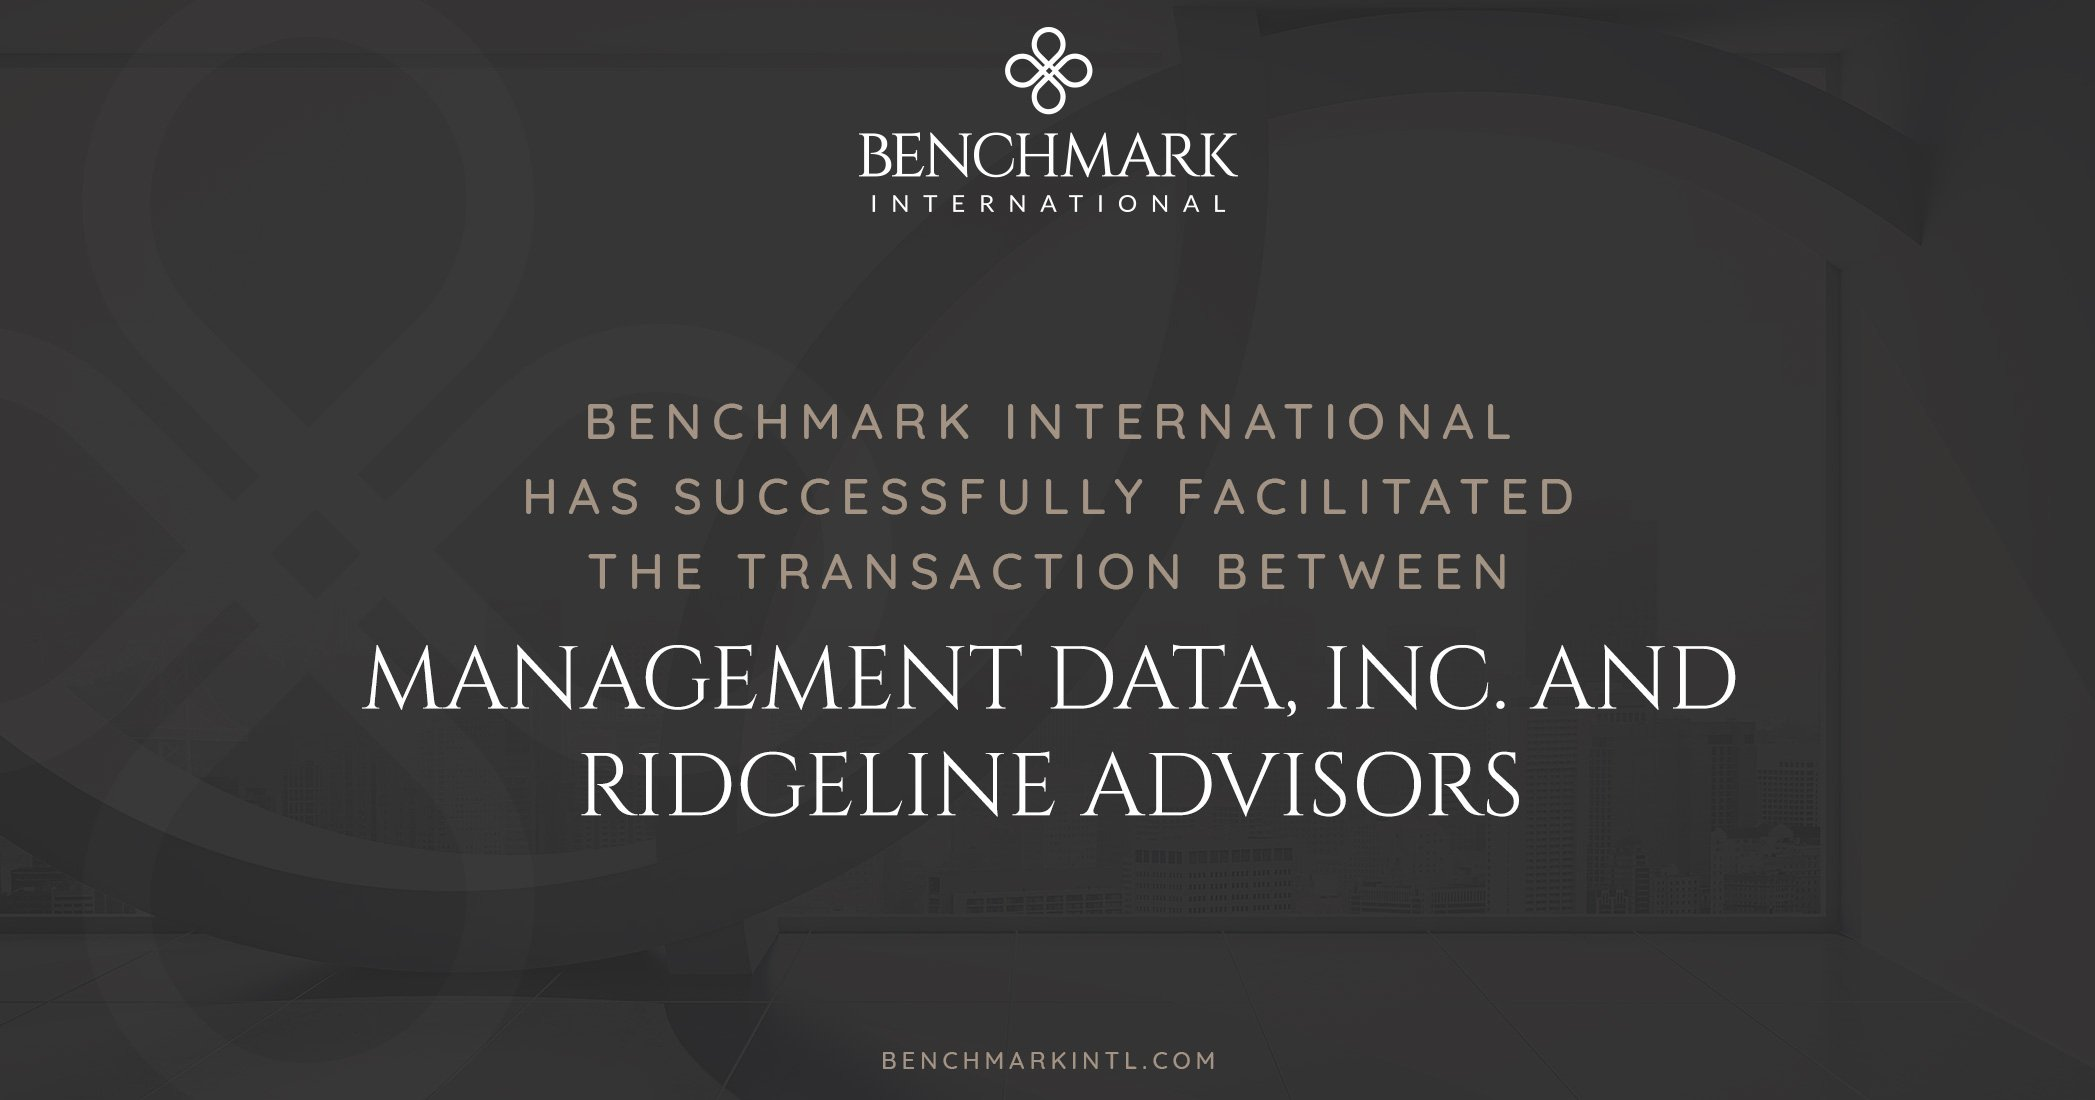 Benchmark International Successfully Facilitated the Transaction Between Management Data, Inc. and Ridgeline Advisors